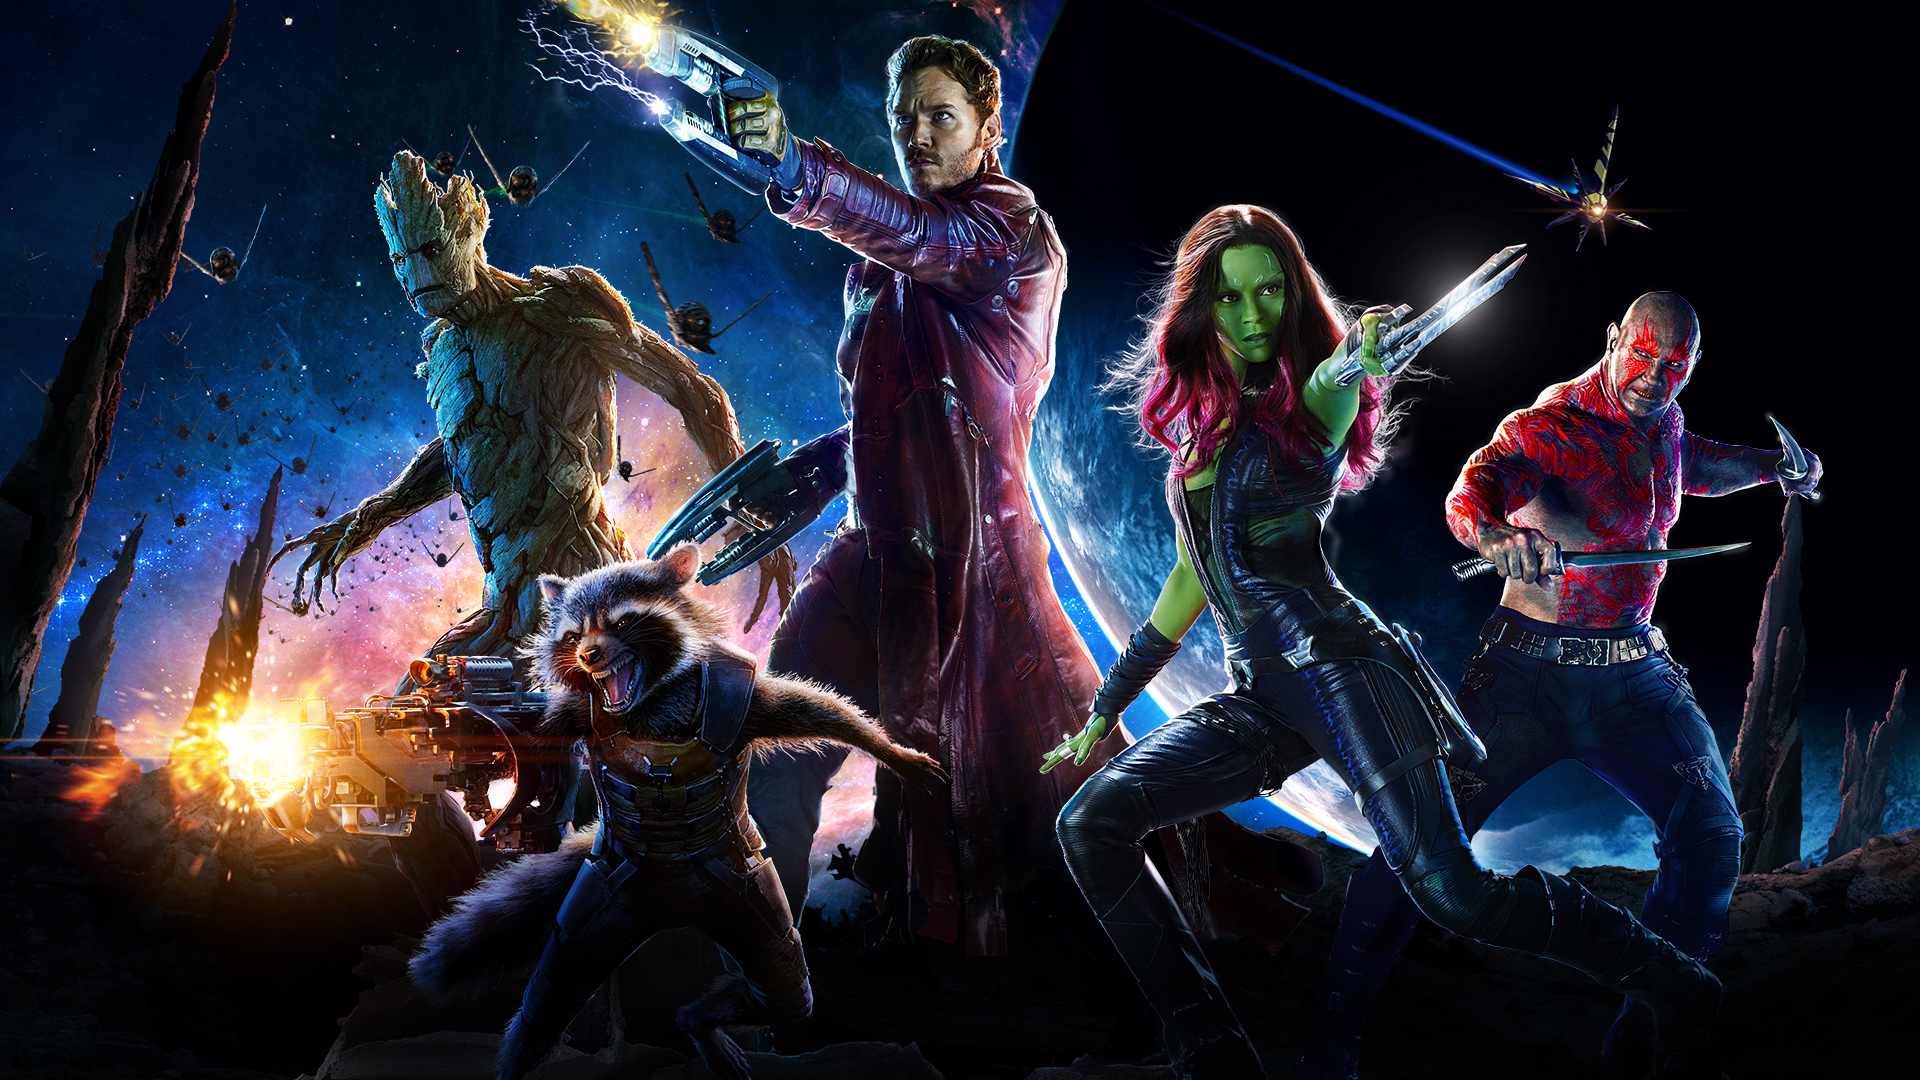 guardians-of-the-galaxy-review.jpg